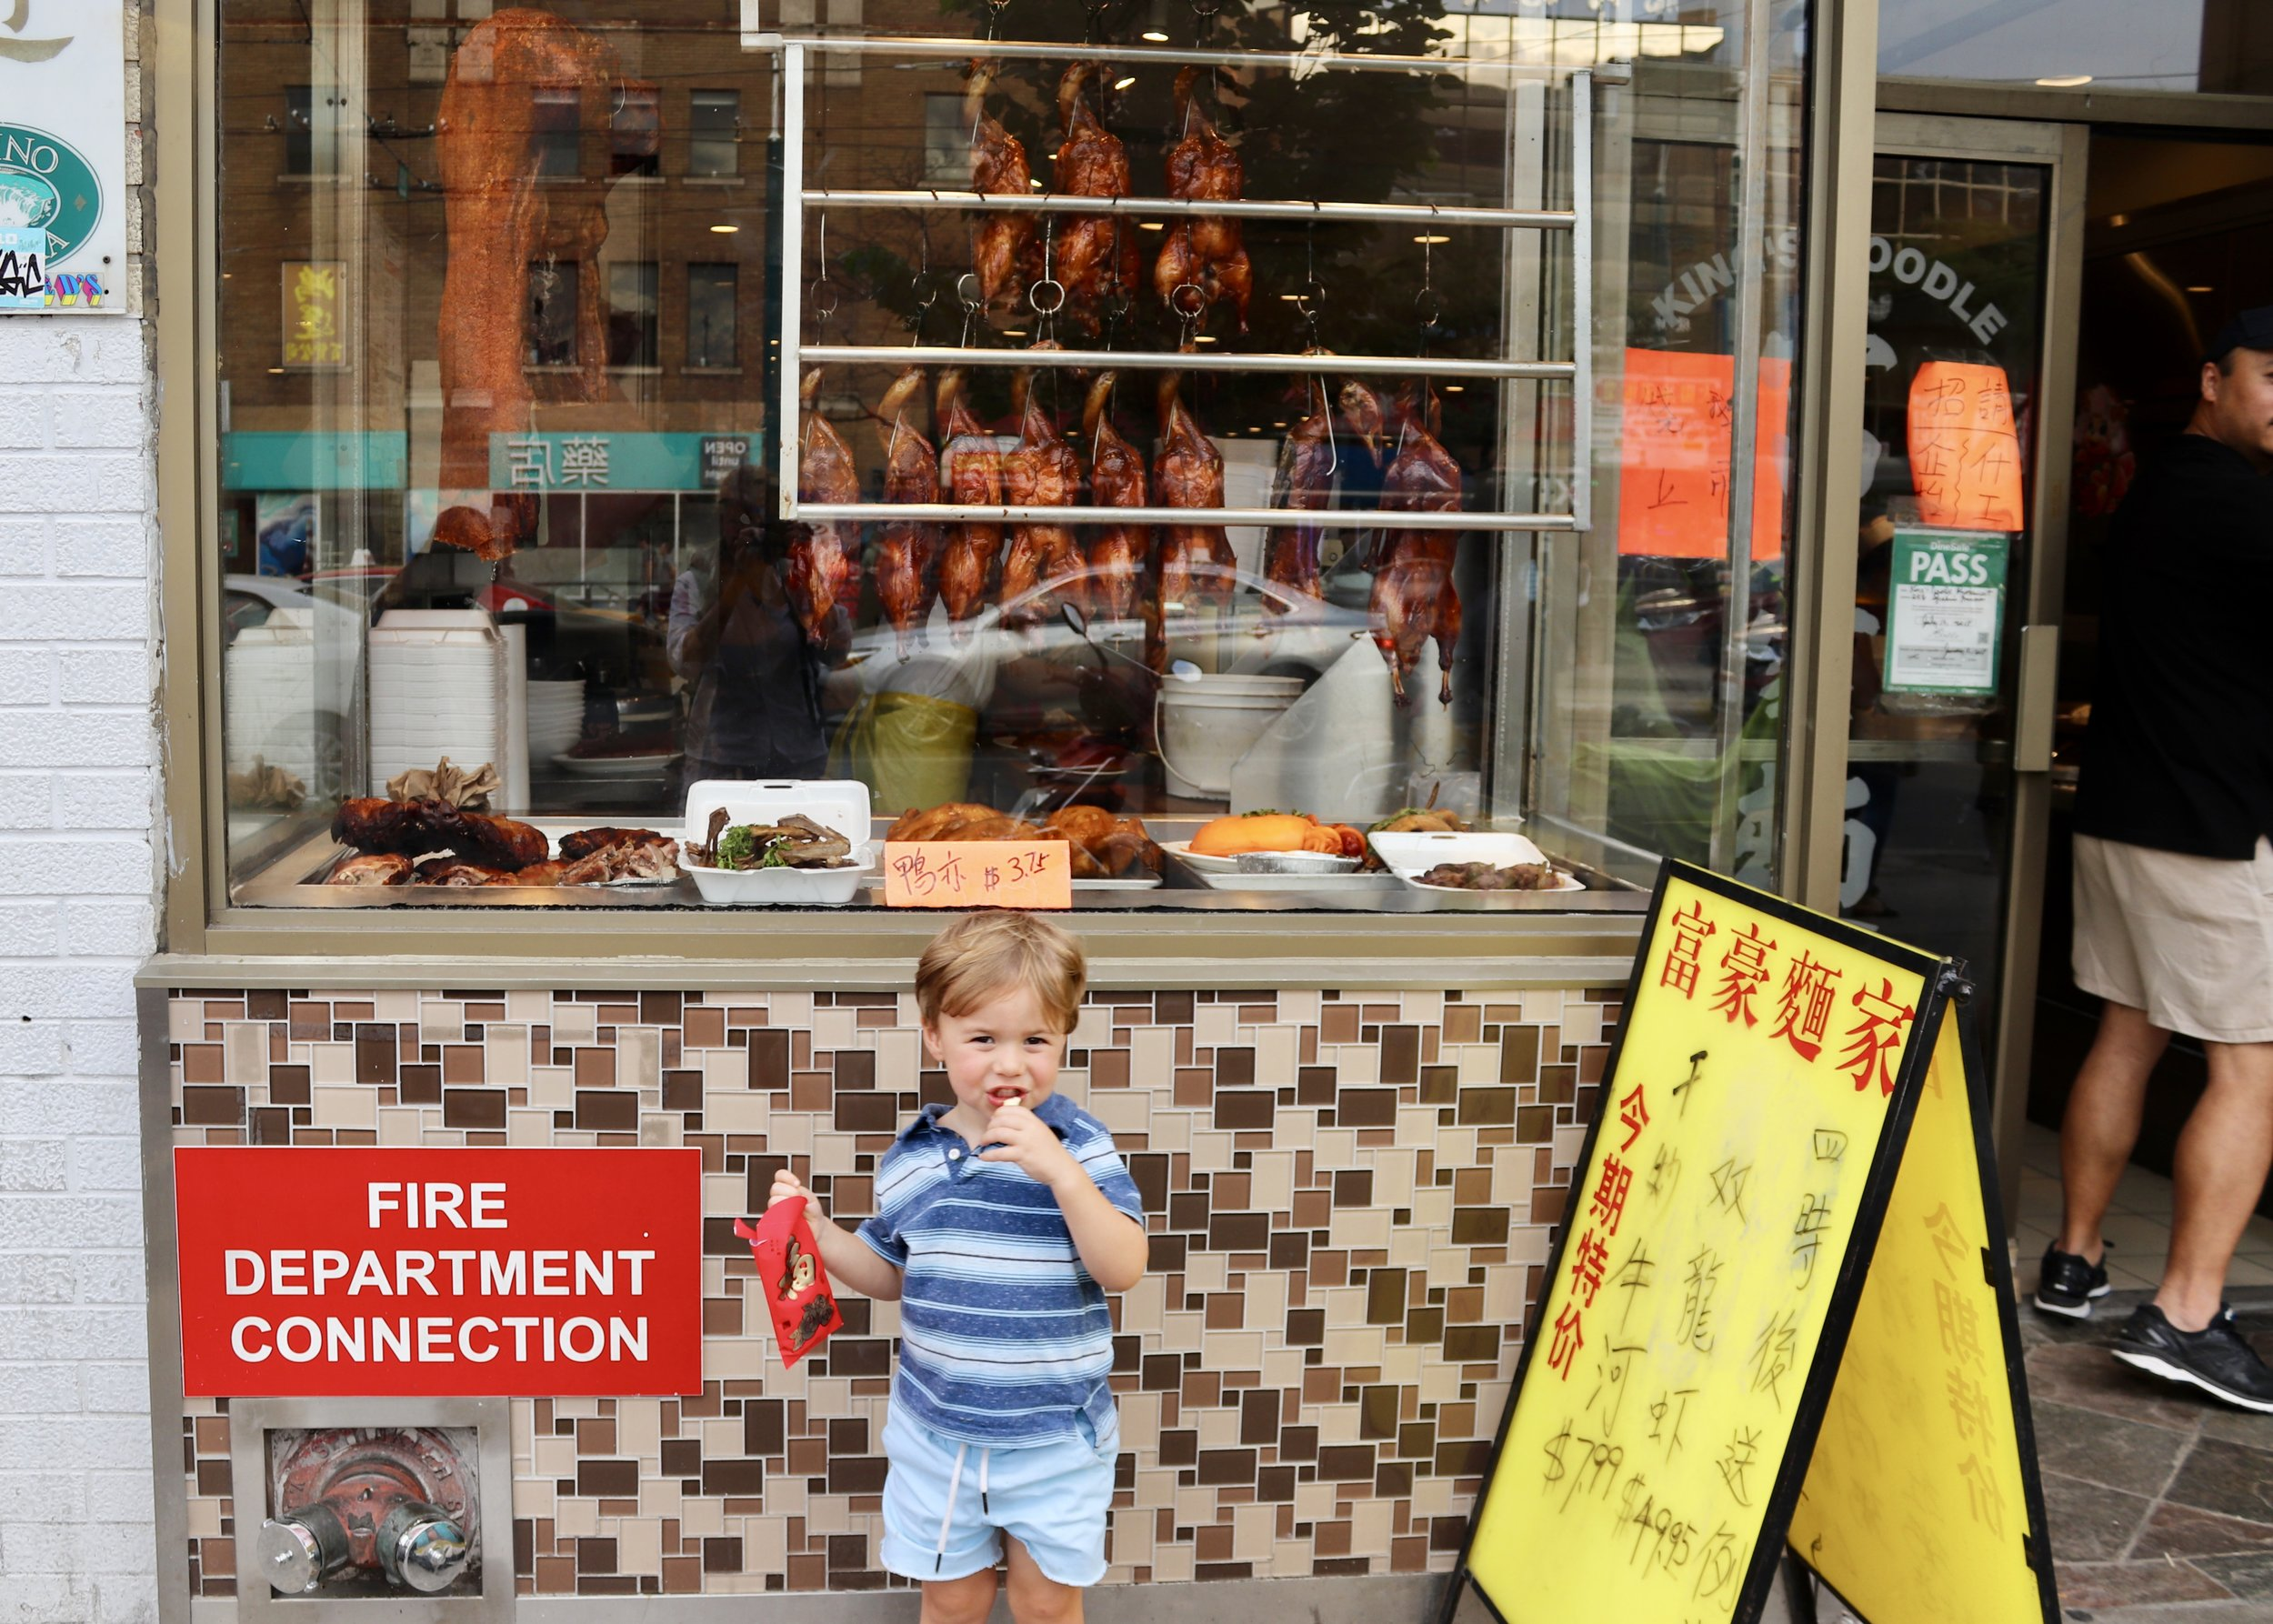 Duck, Duck, Pig:  Make that barbecued, at King's Noodle Restaurant.